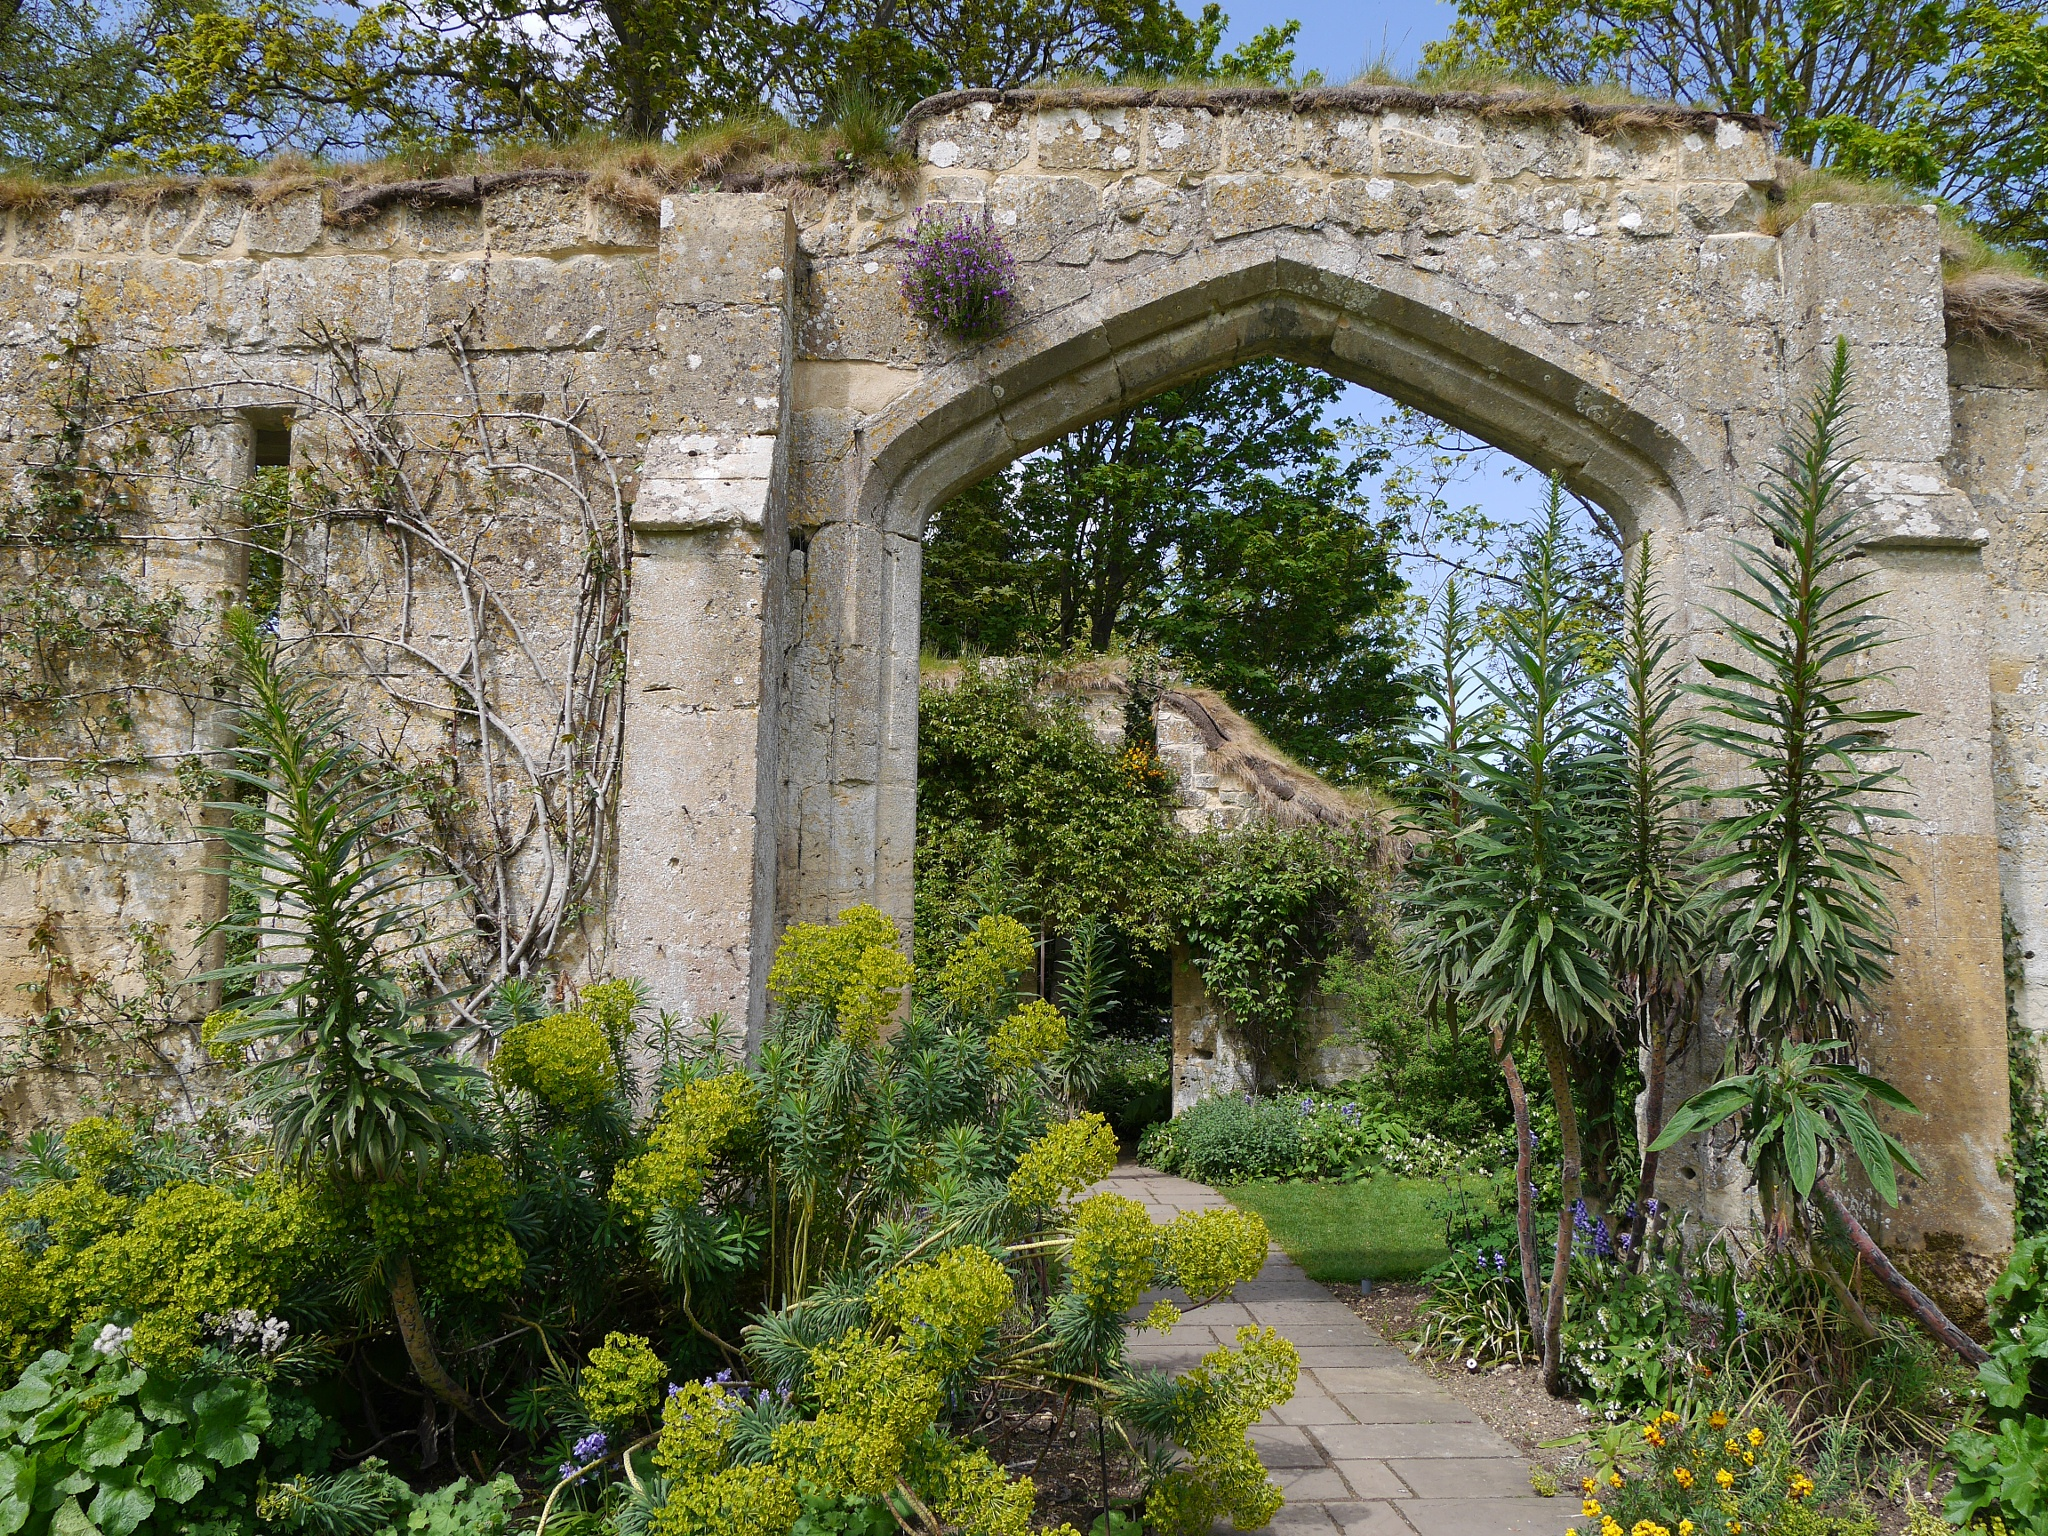 Gateways to gardens by Stuart51